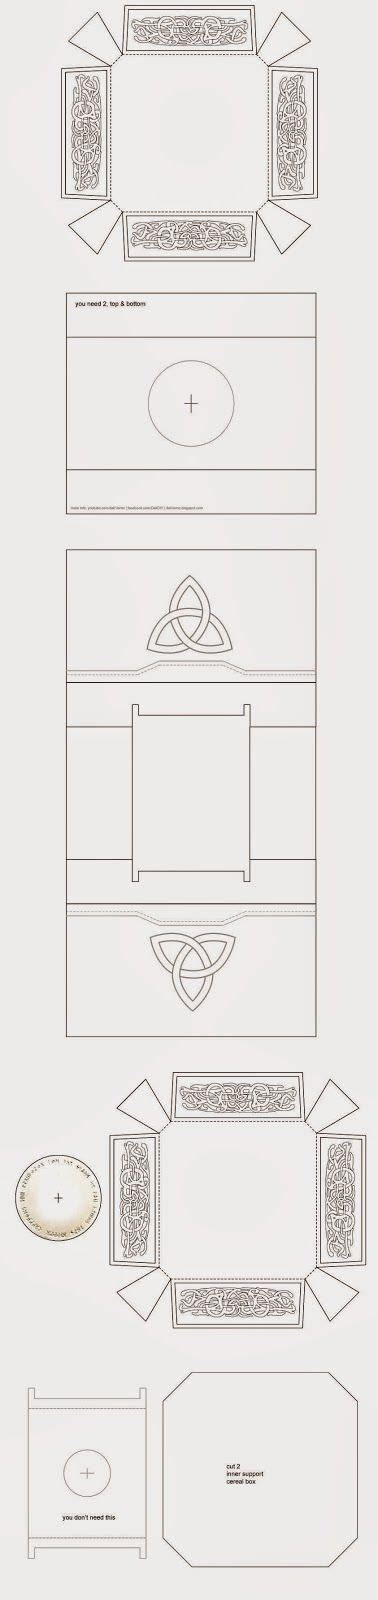 110 Best Images About Dali Diy Projects On Pinterest Diy Cardboard Dawn Of Justice And Thor Hammer Printable Template